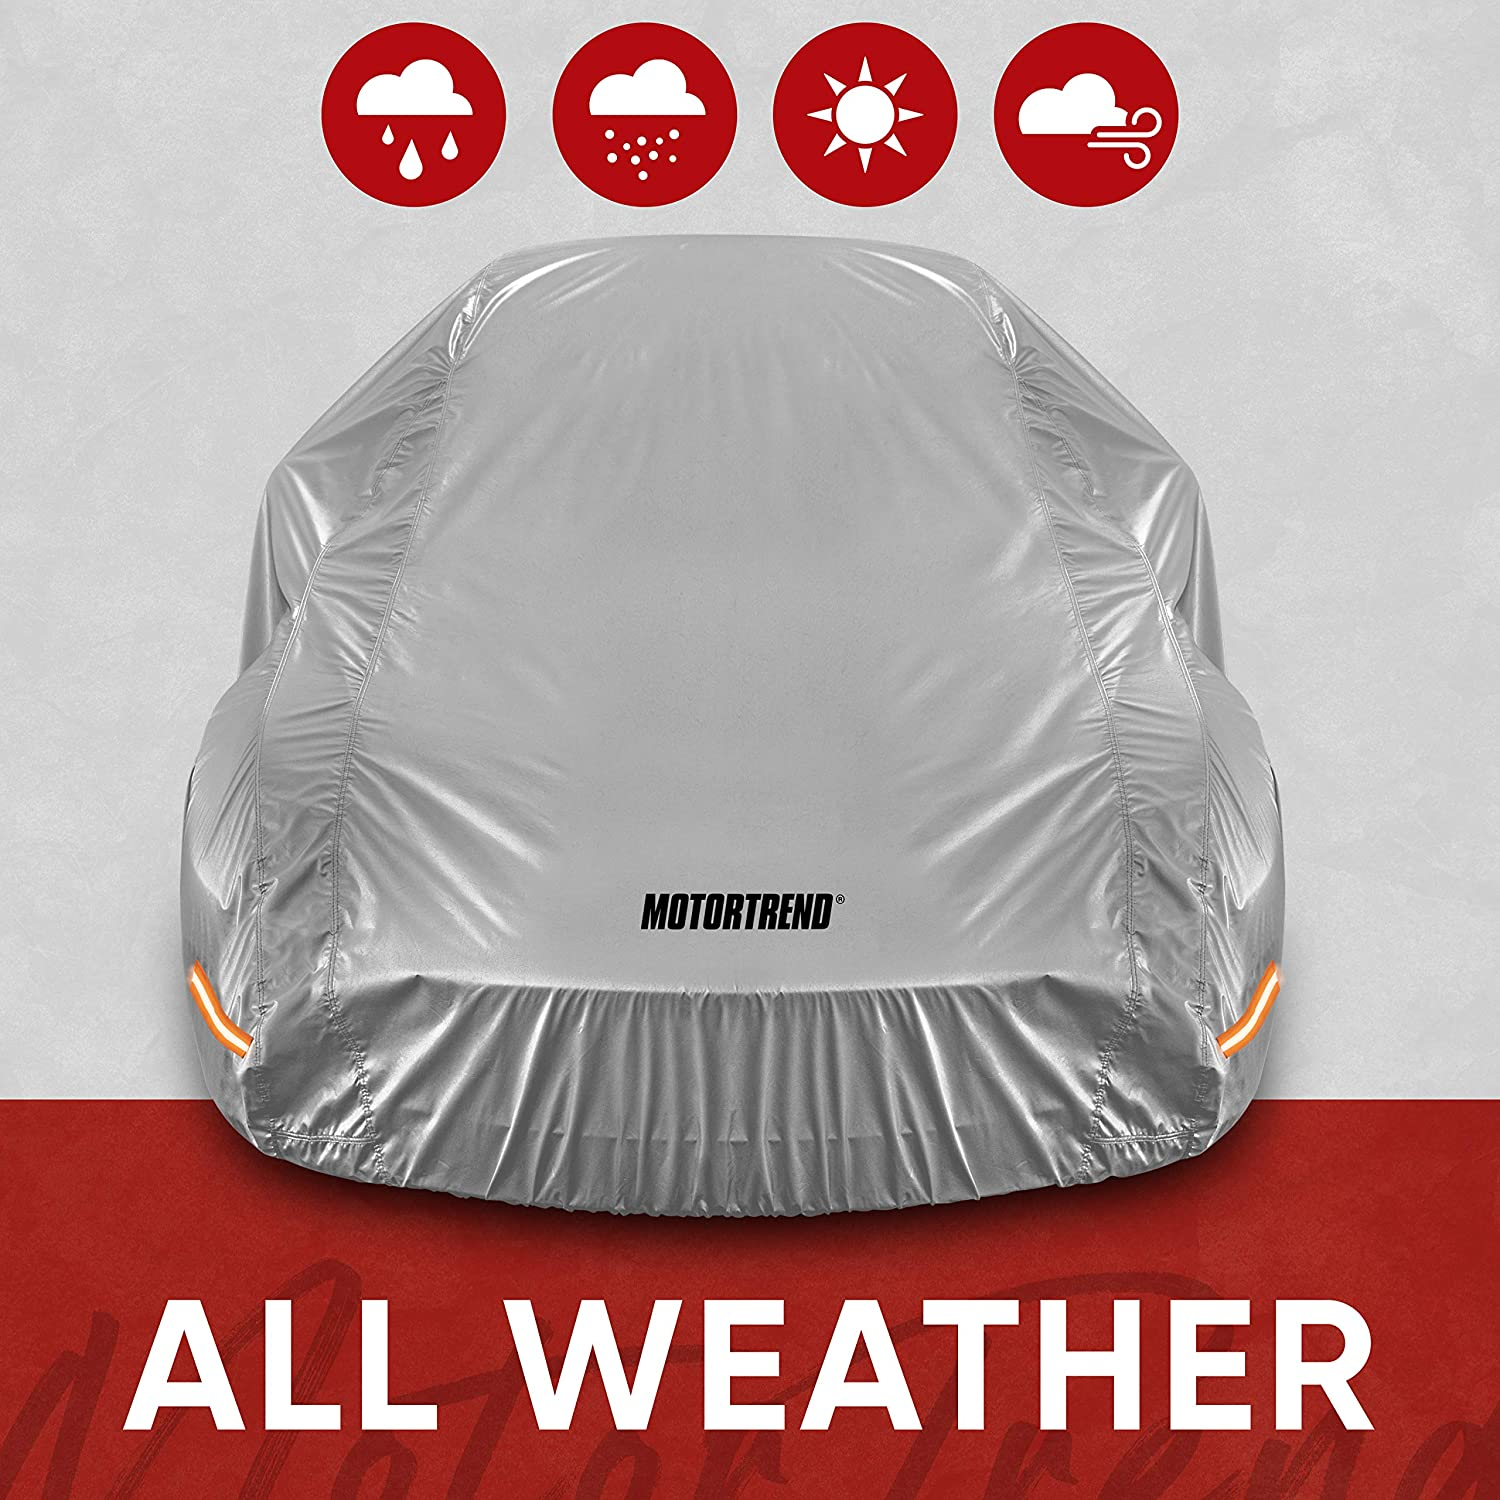 Motor Trend SafeKeeper All Weather Car Protecti - Advanced Cover Super intense OFFicial mail order SALE